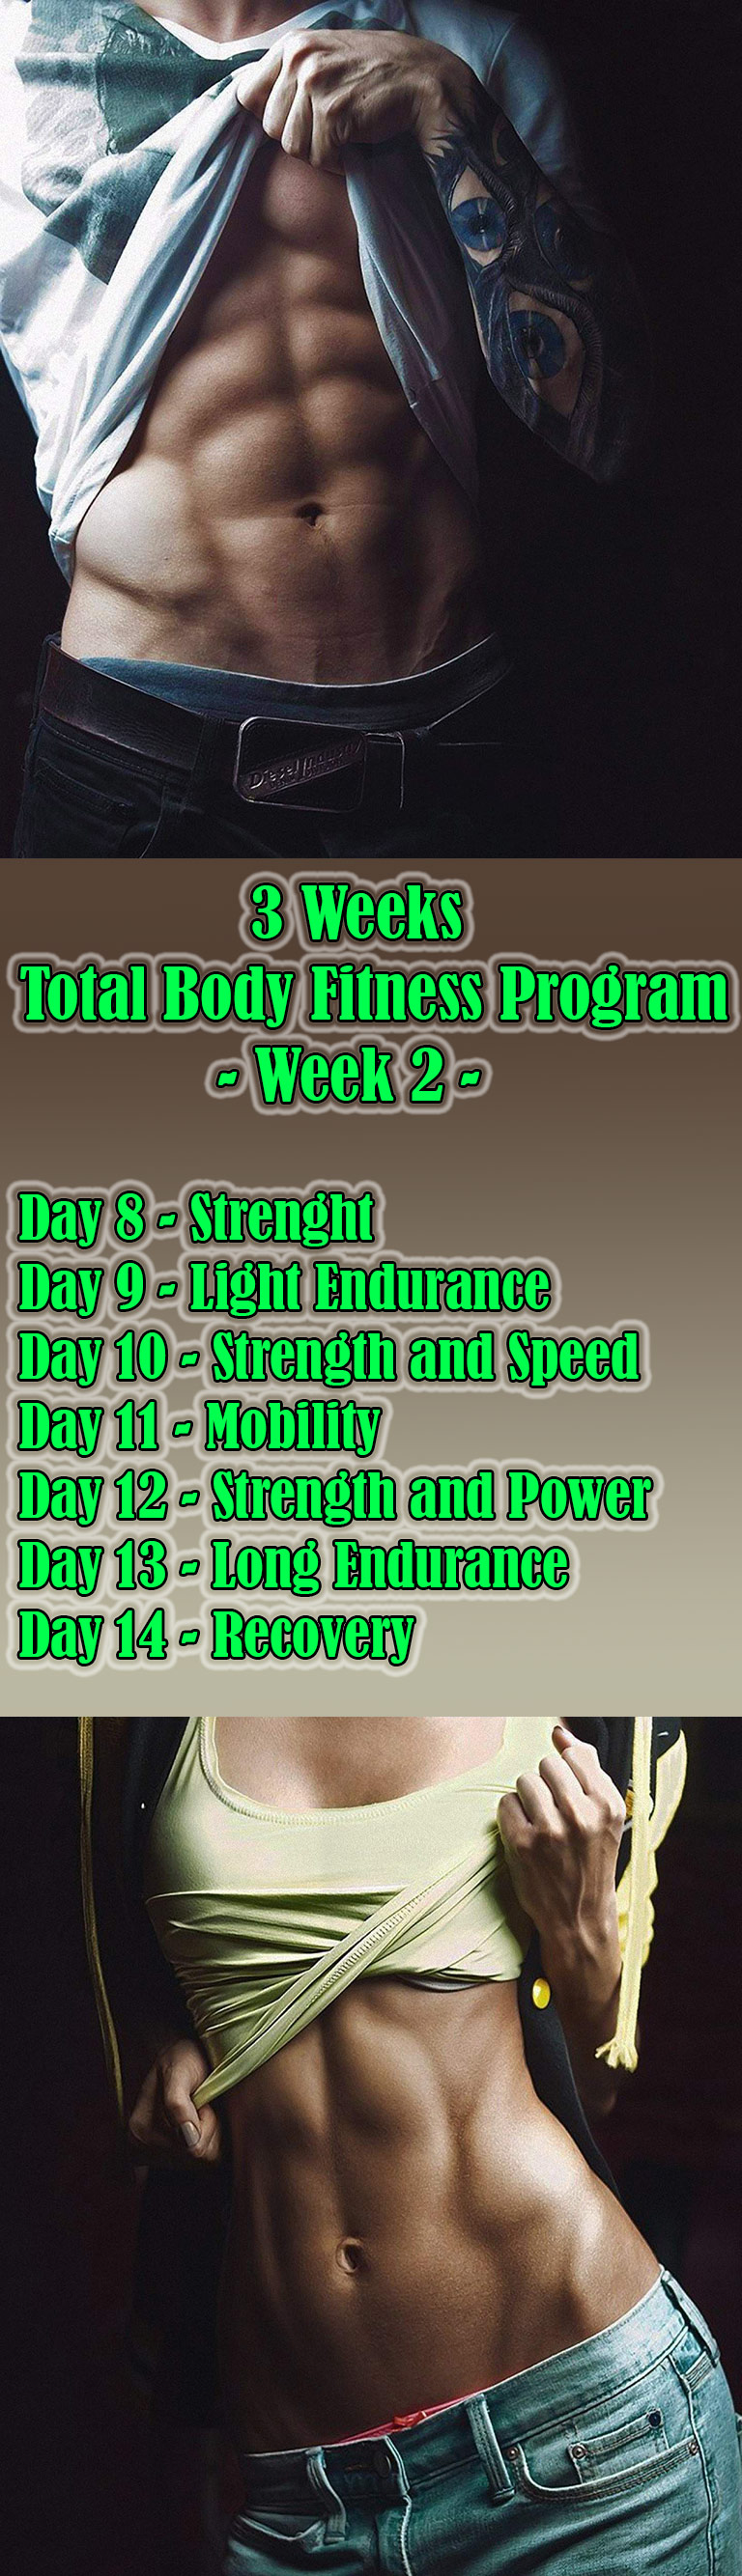 3 Weeks Total Body Fitness Program- Week 2